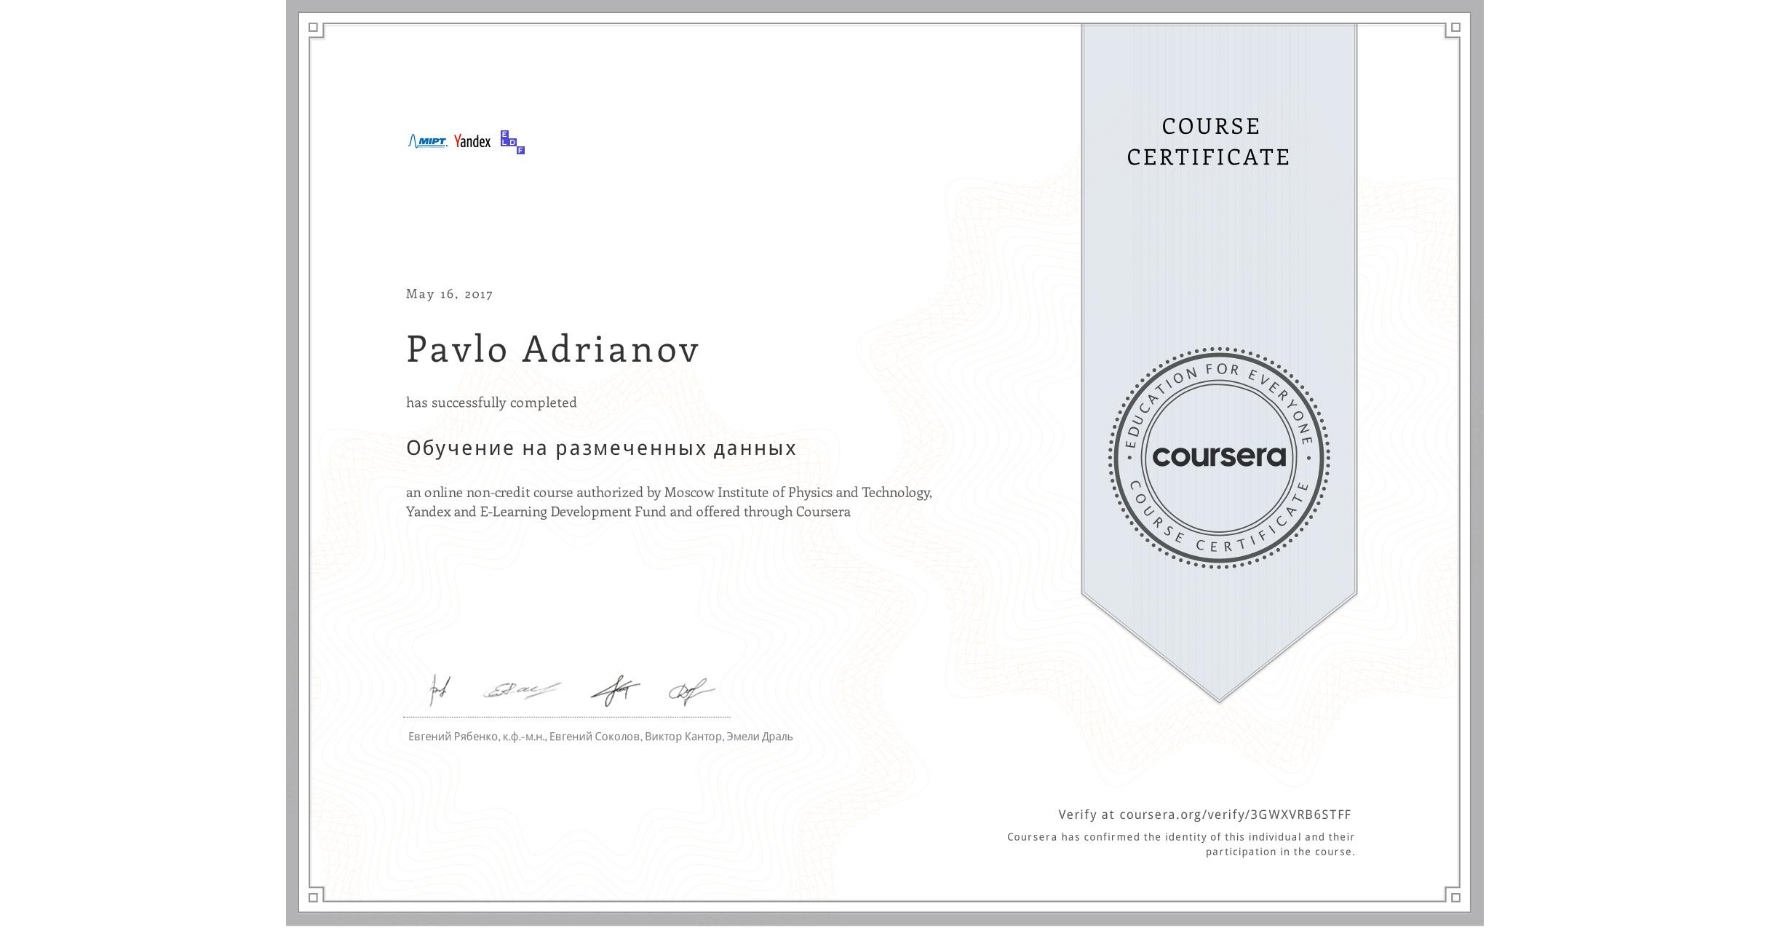 View certificate for Pavlo Adrianov, Обучение на размеченных данных, an online non-credit course authorized by Moscow Institute of Physics and Technology, Yandex & E-Learning Development Fund and offered through Coursera